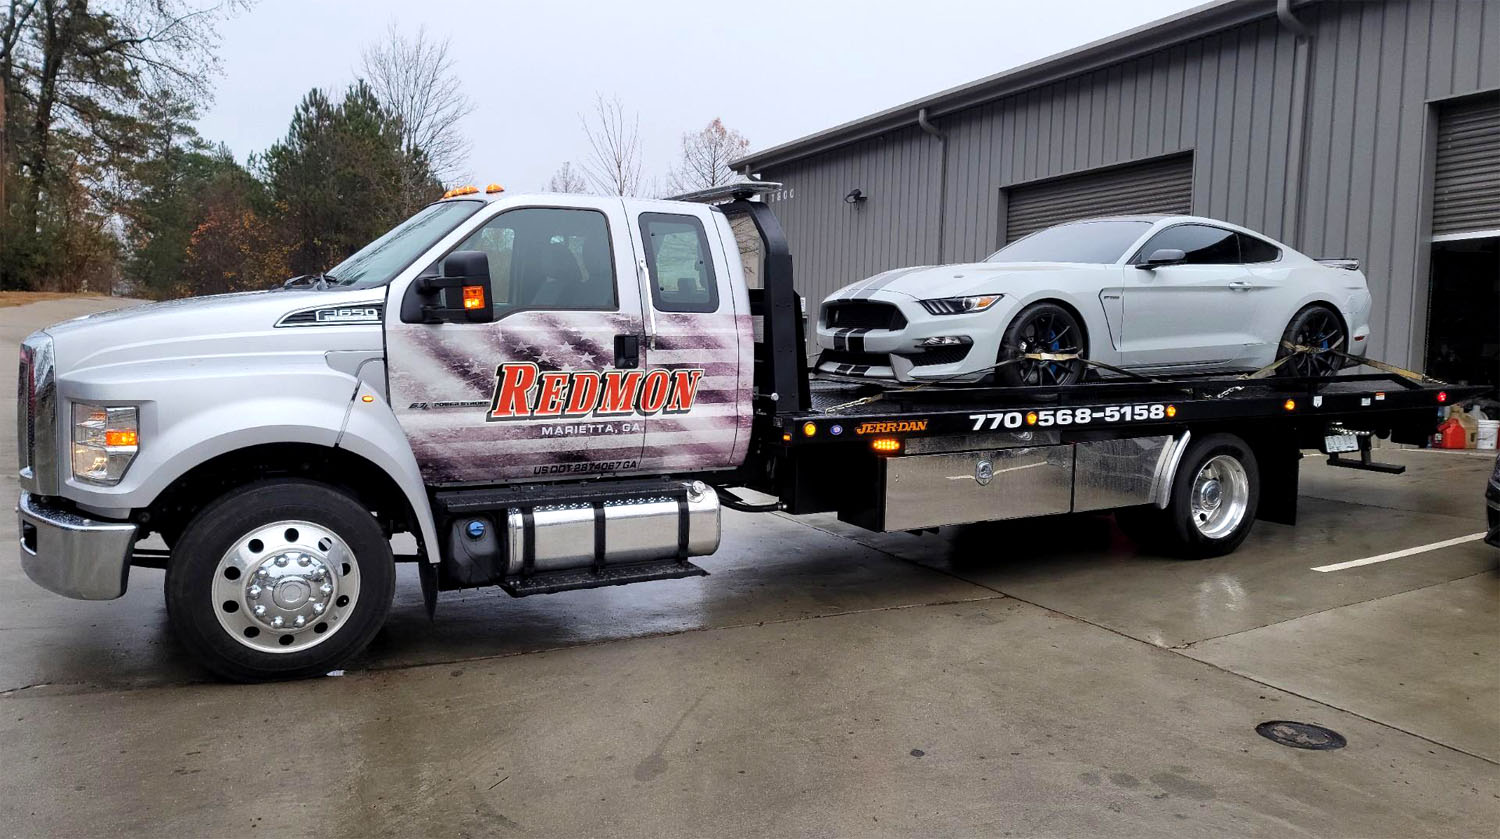 Wrecker Service and Towing Service in Marietta GA